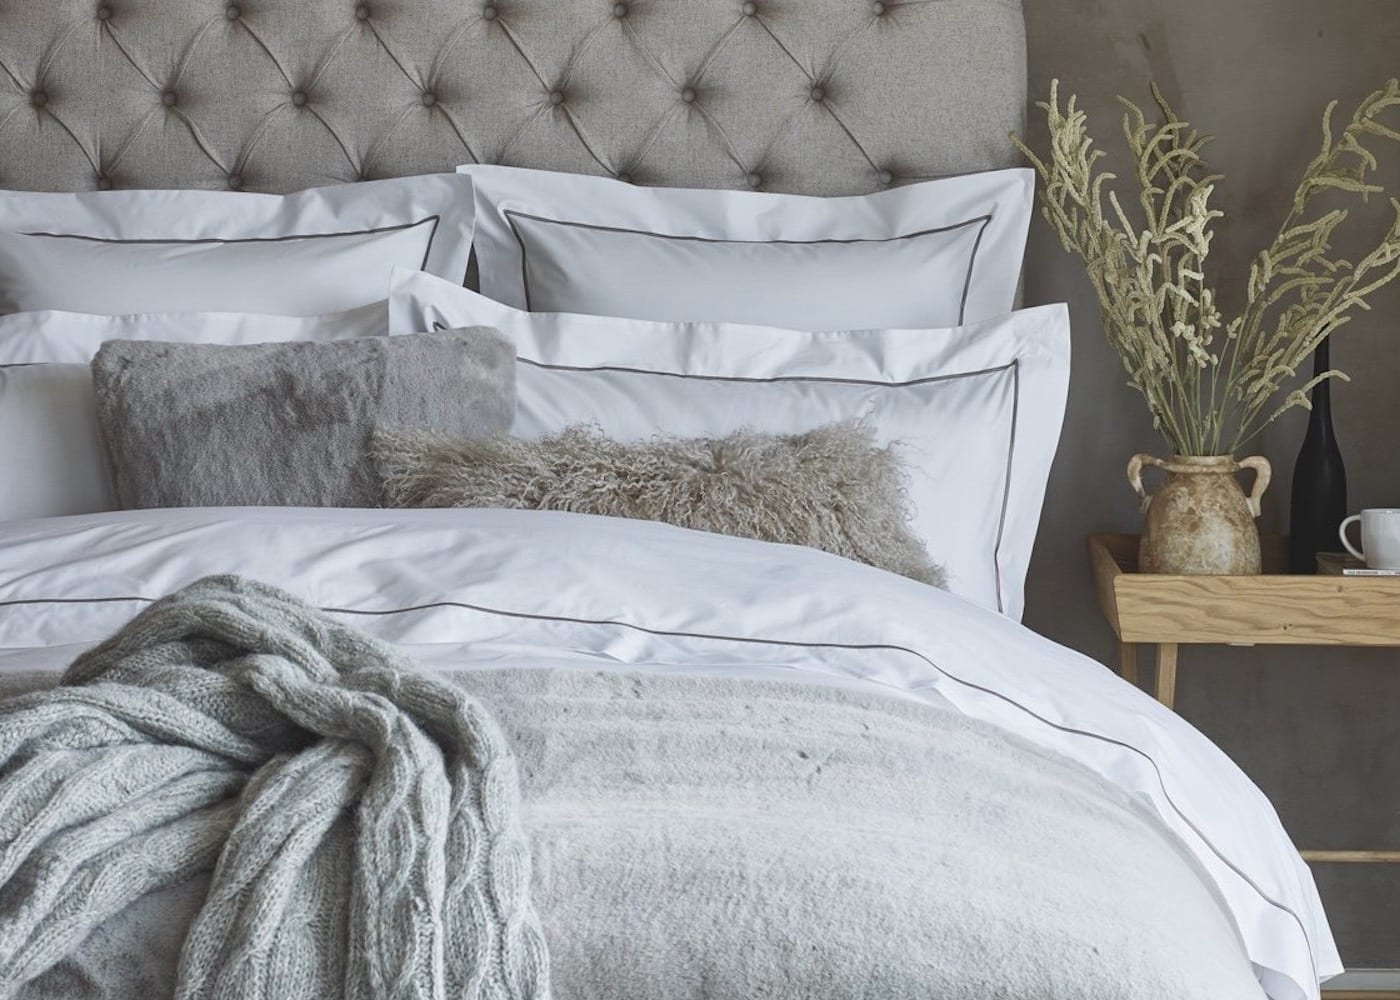 Where to buy bedding in Bali: From linen sheets and luxe pillows, to eco mattresses and gorgeous throws